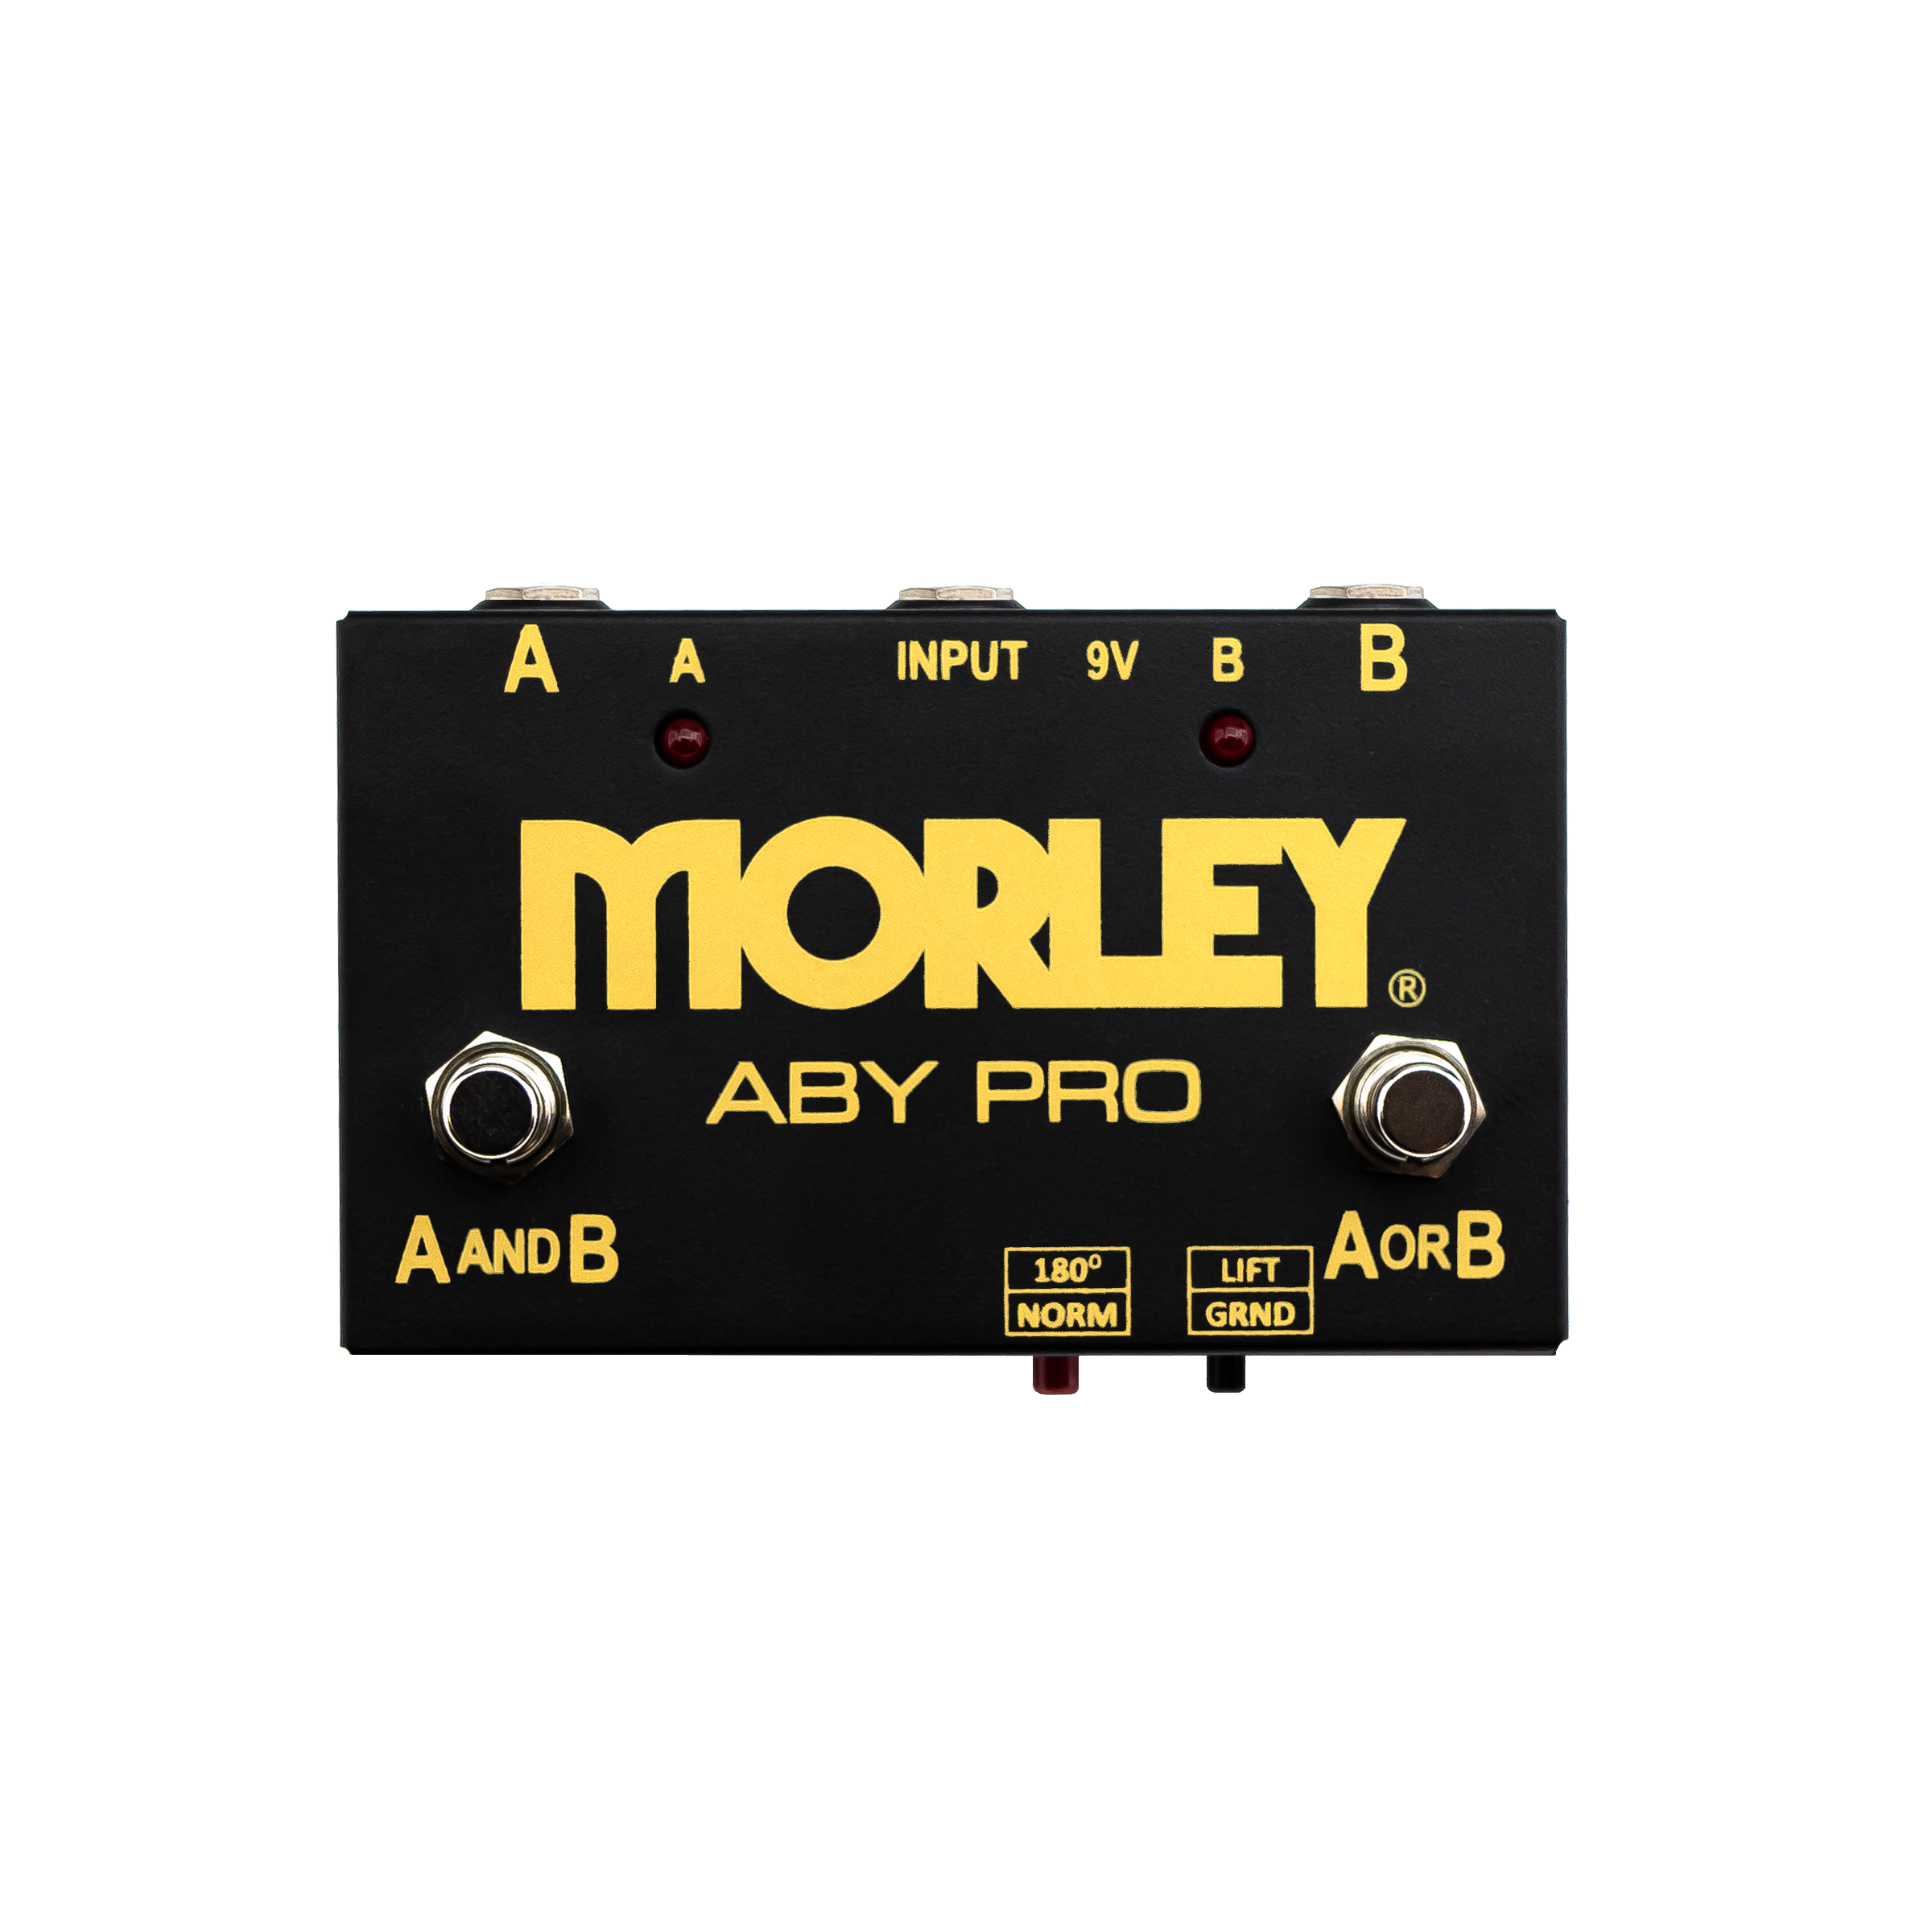 MORLEY ABY-PRO ABY PRO